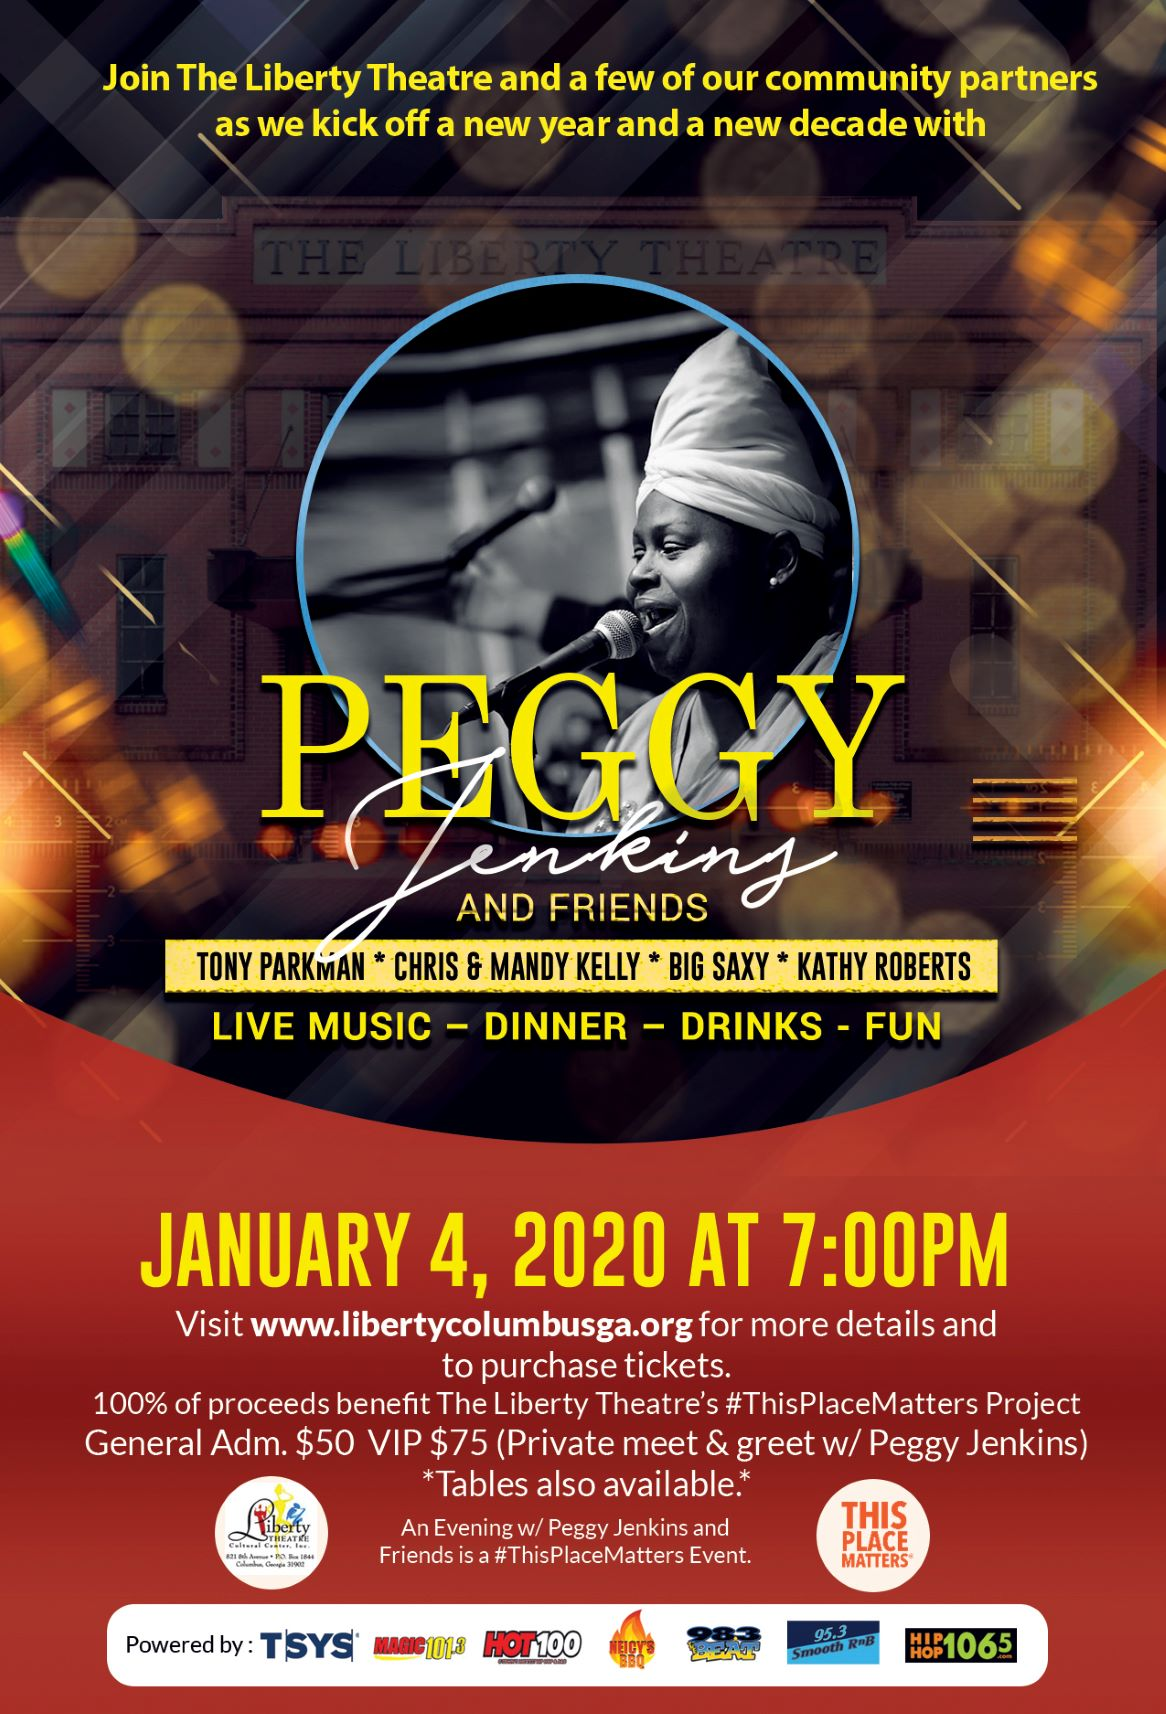 An Evening With Peggy Jenkins & Friends